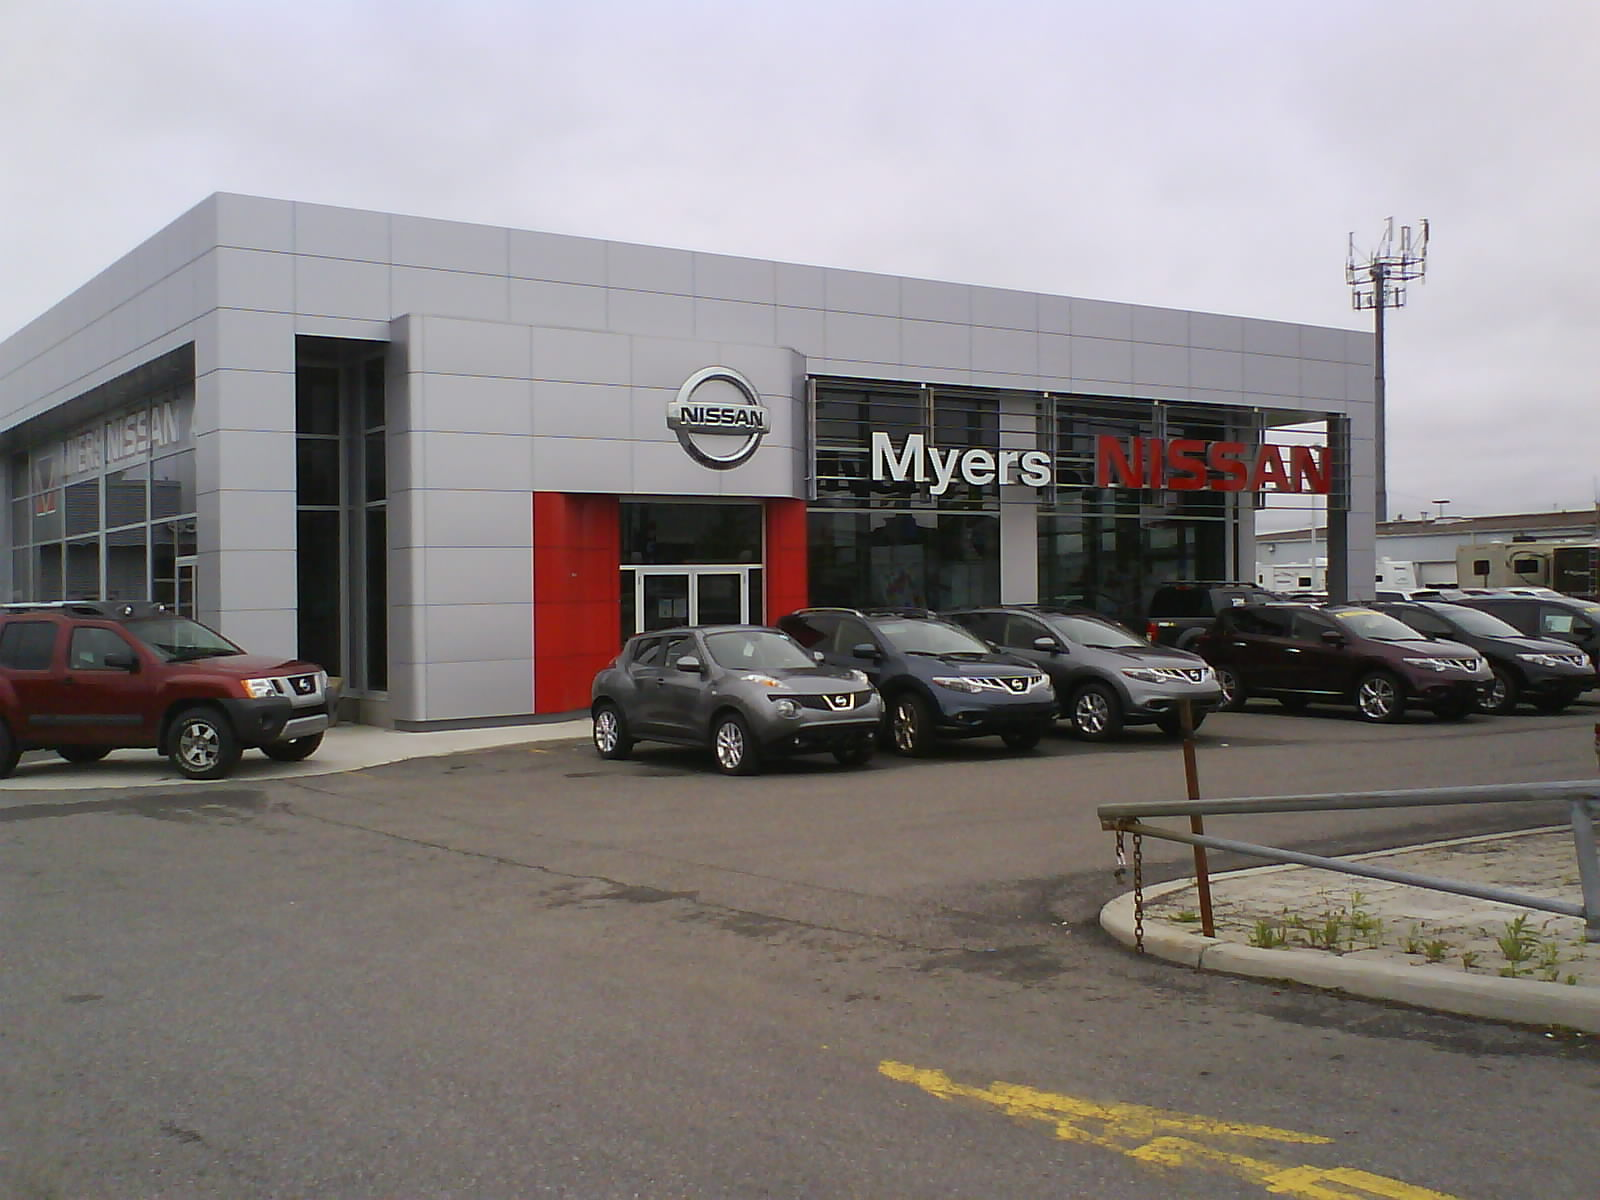 Architecture Branding Nissan s normative approach to dealership